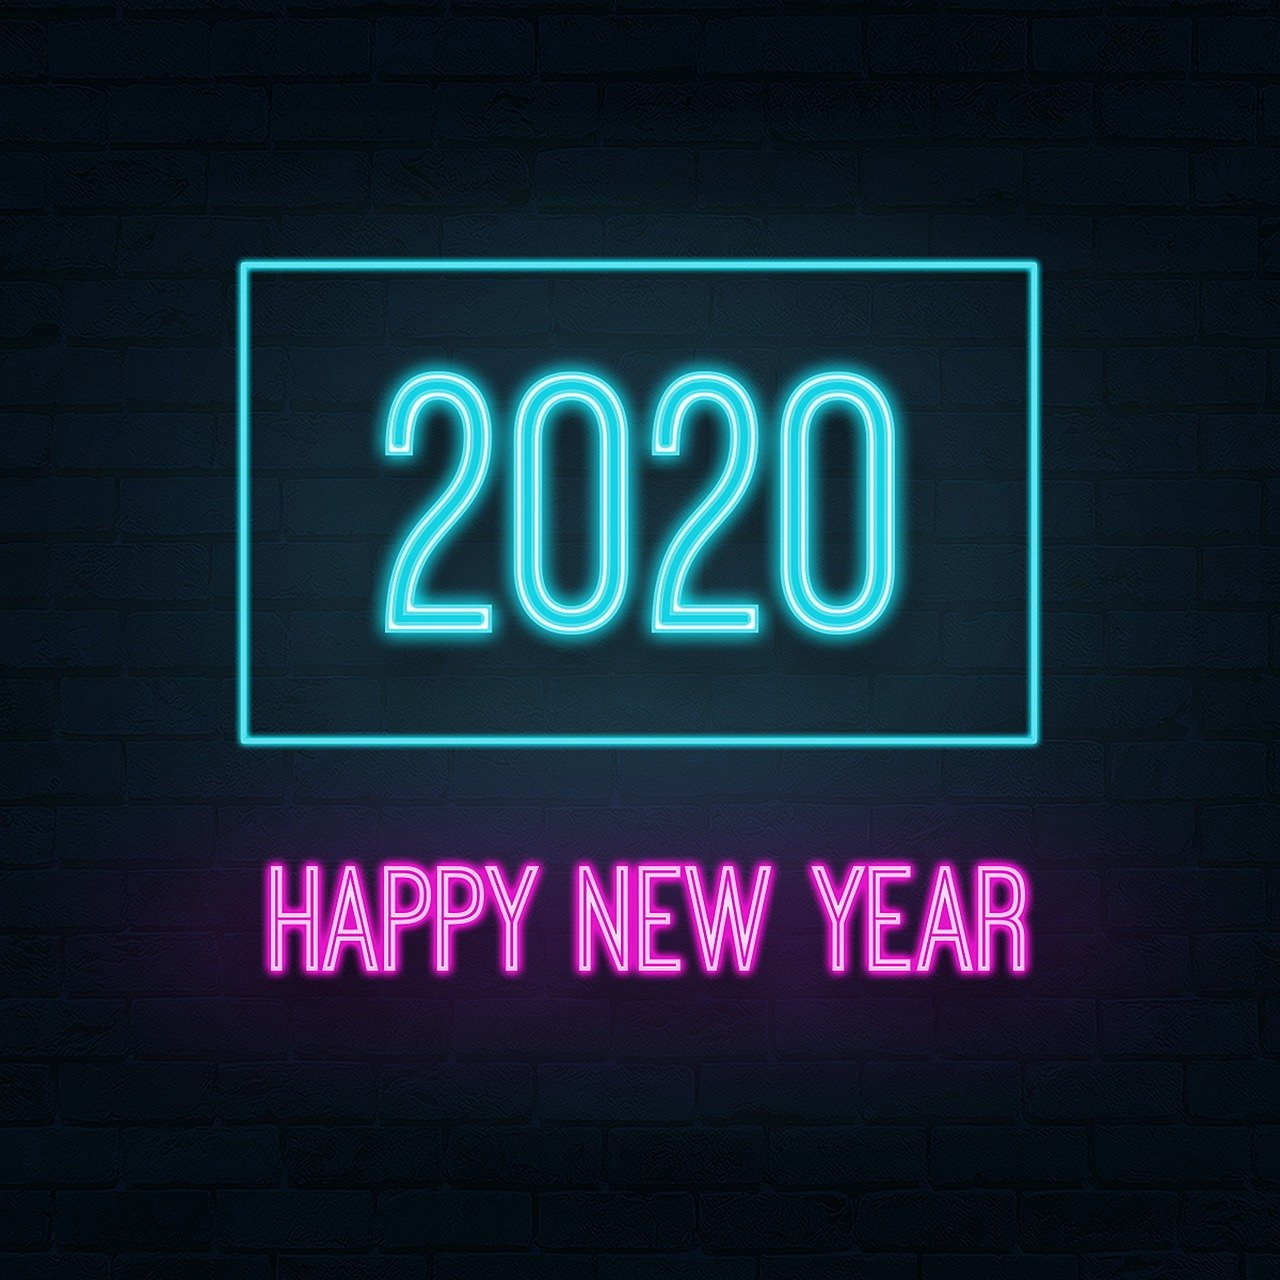 Not predictions, just a PLM wish list for 2020!